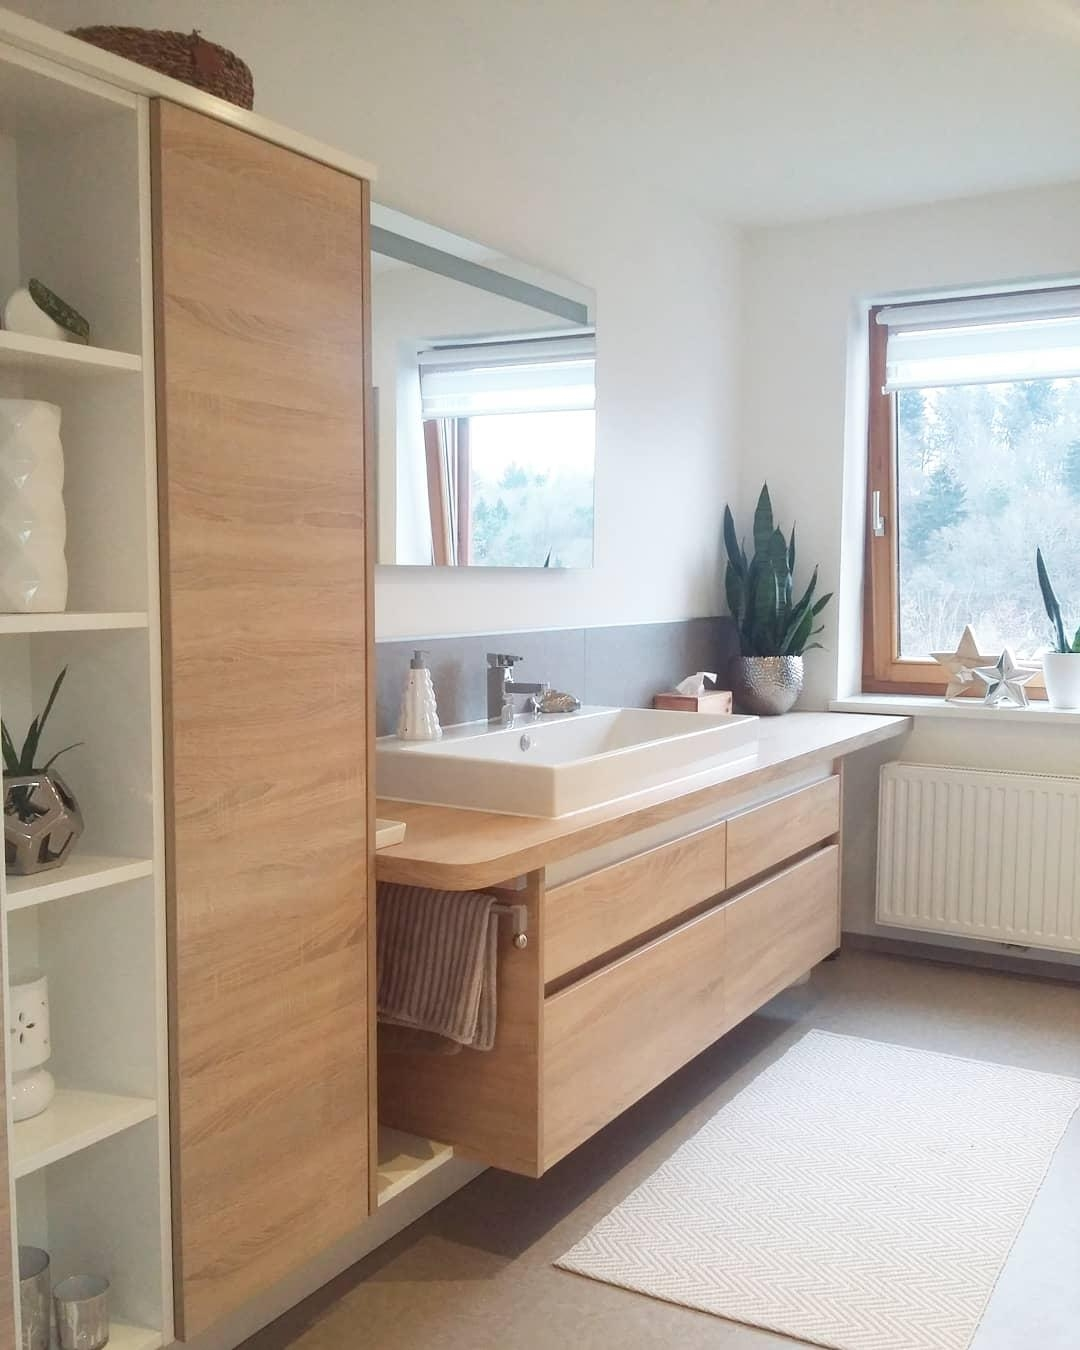 #badezimmer #waschtisch #holz #eiche #betonoptik #bathroominspo #bathroom #nordichome #whiteandwood #home #scandi